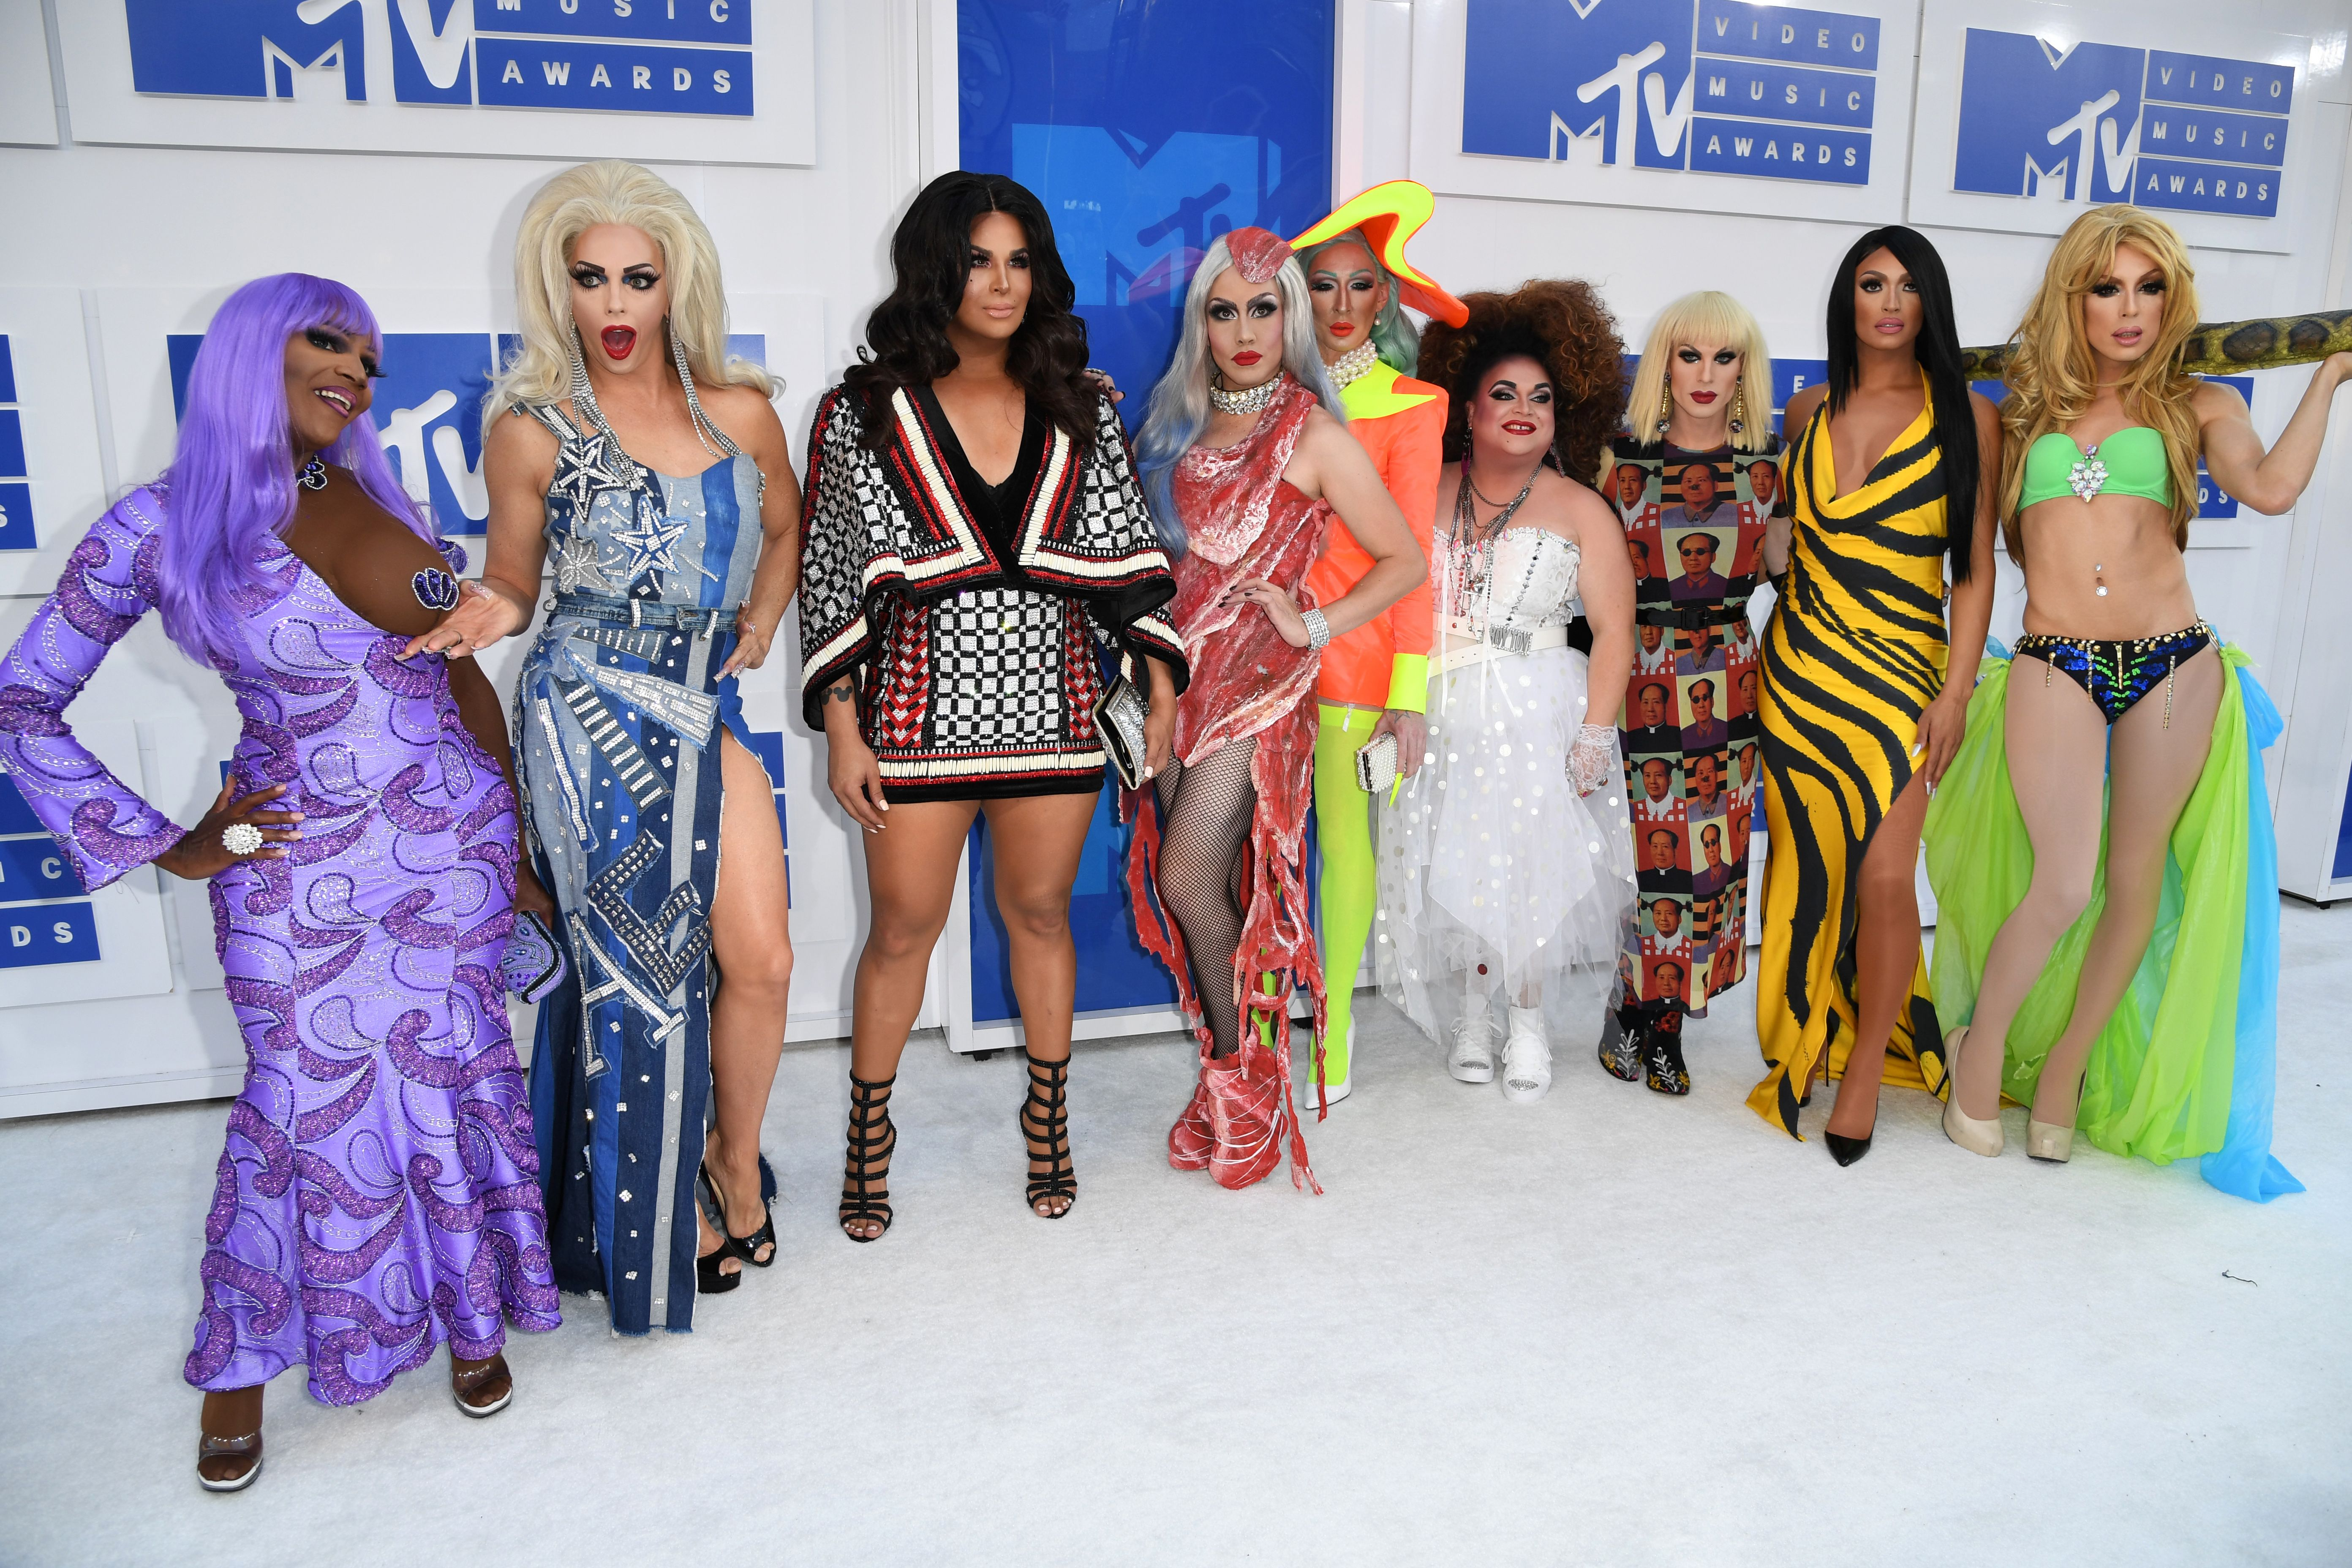 Rupaul's Drag Race All Stars attend the 2016 MTV Video Music Awards at Madison Square Garden on Aug. 28, 2016 in New York City.